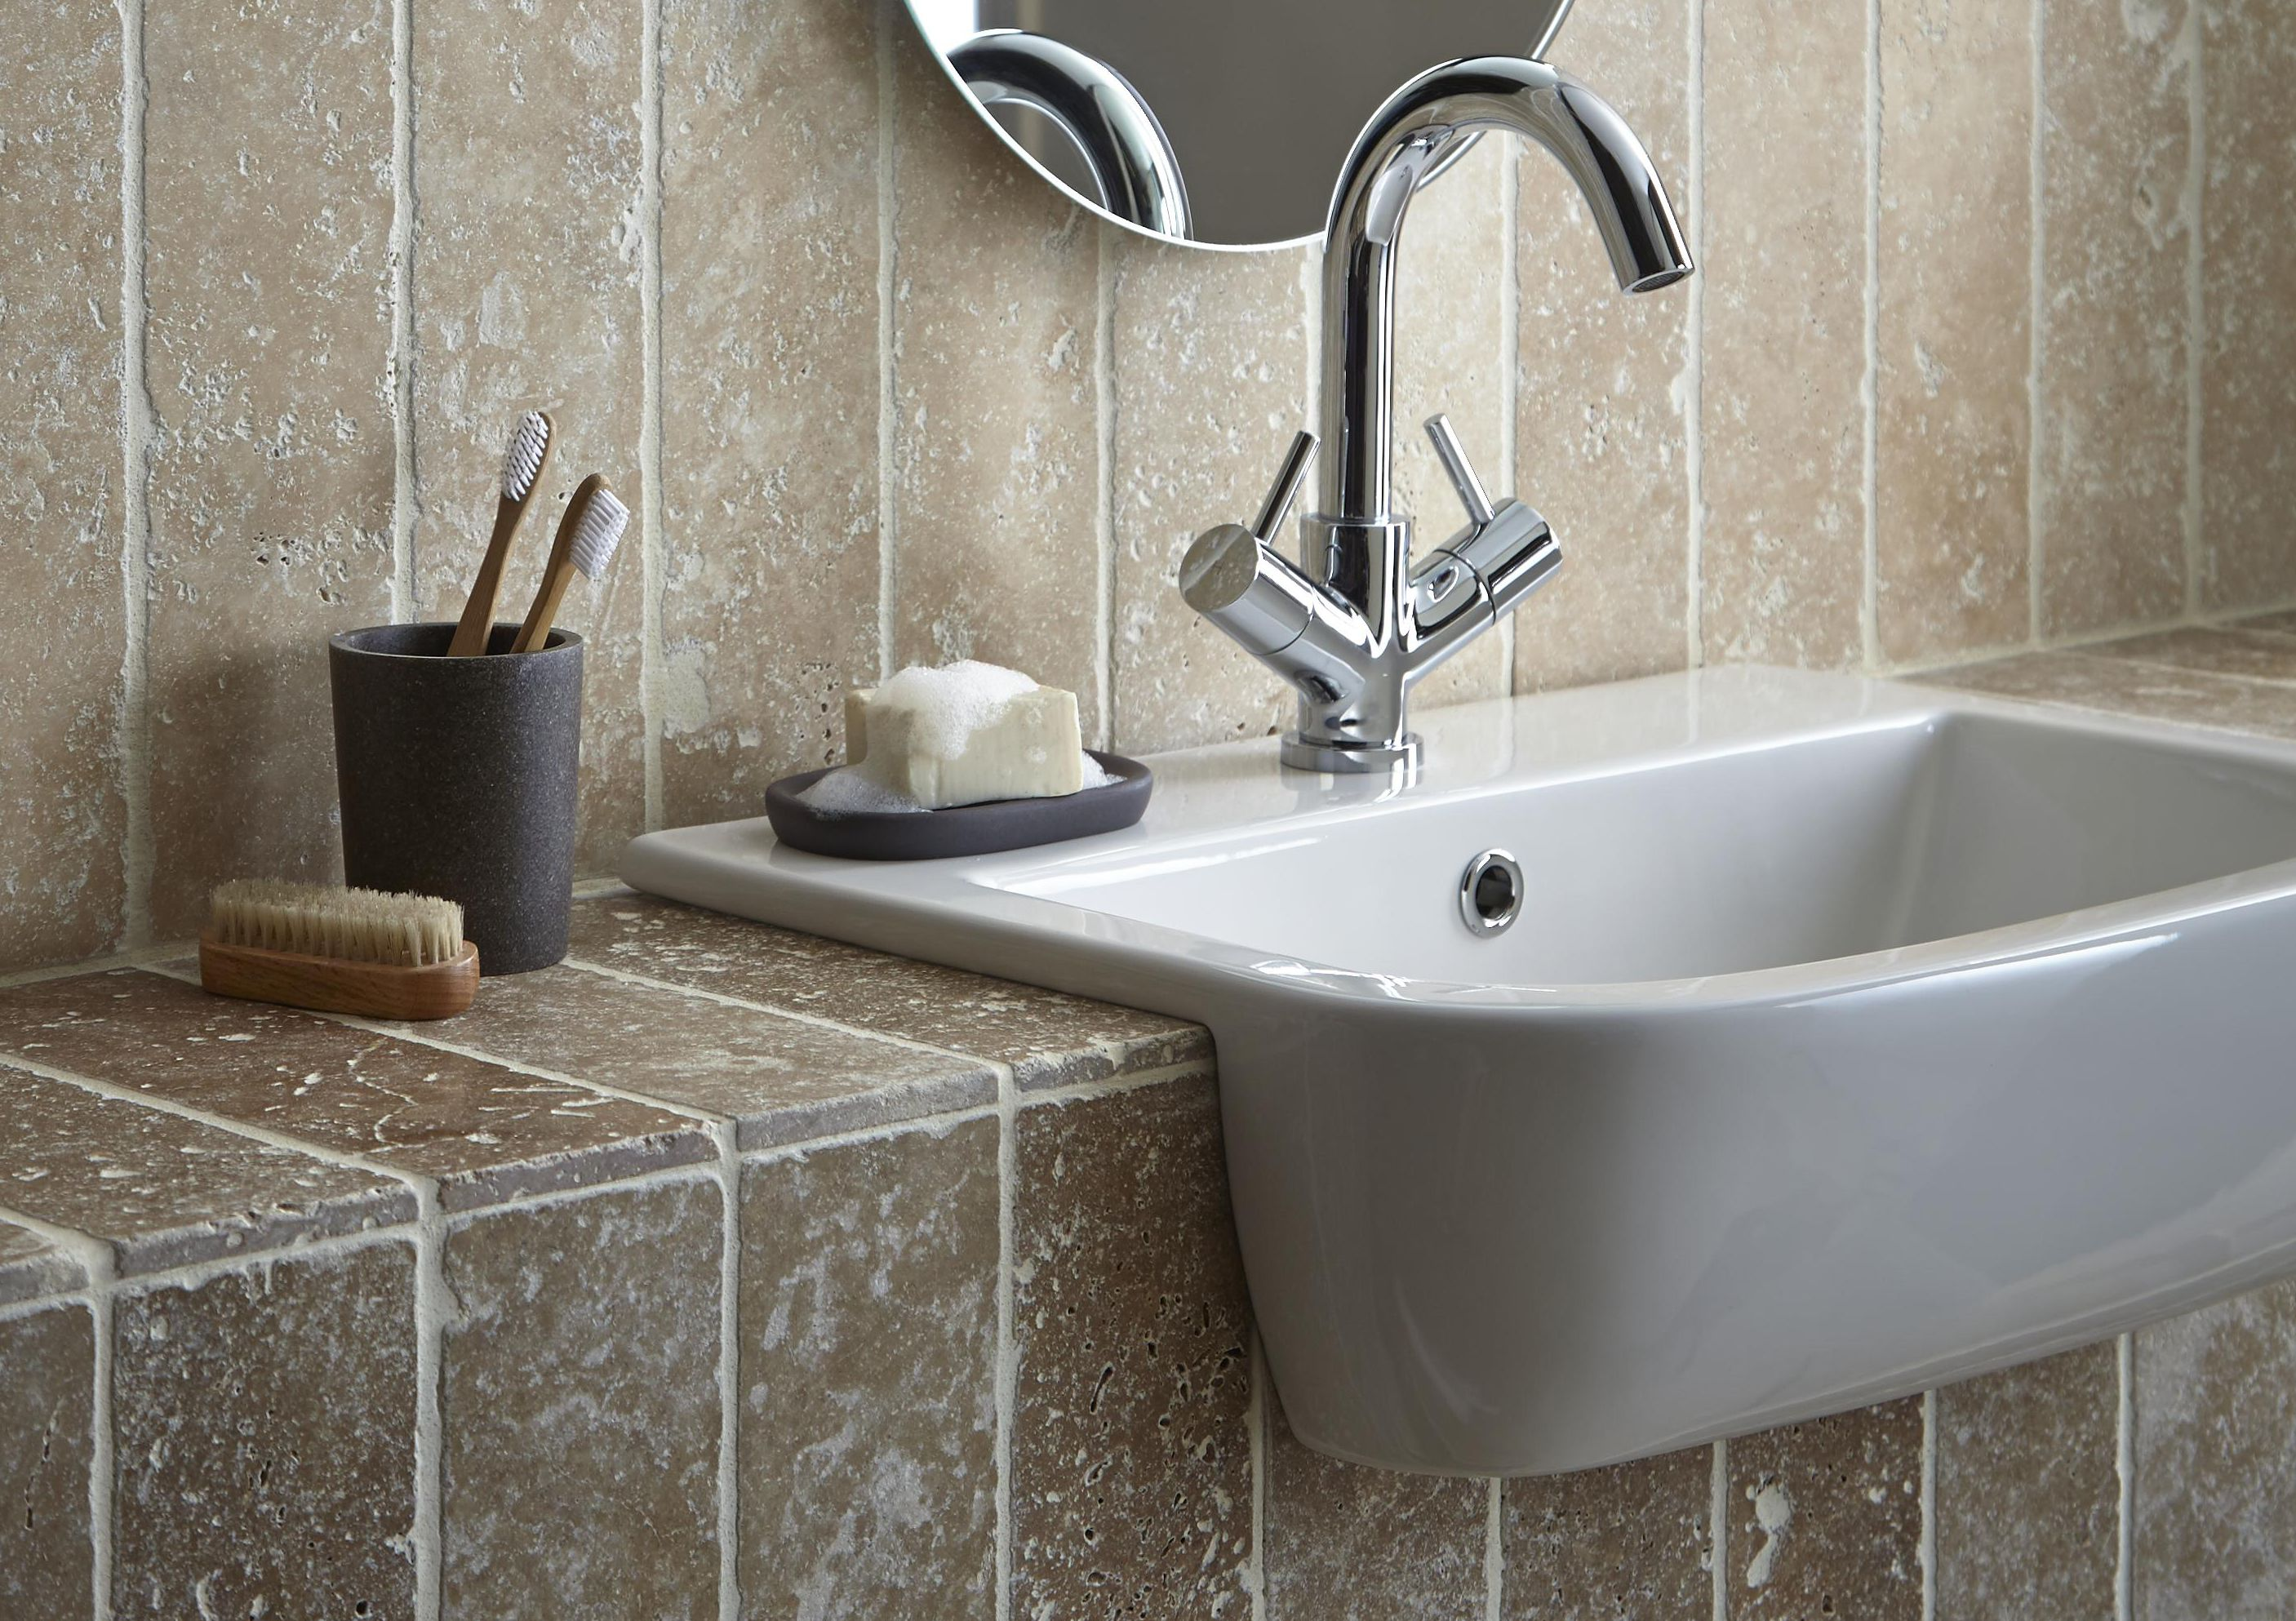 Bathroom Sinks B&Q bathroom basins | bathroom sinks | diy at b&q